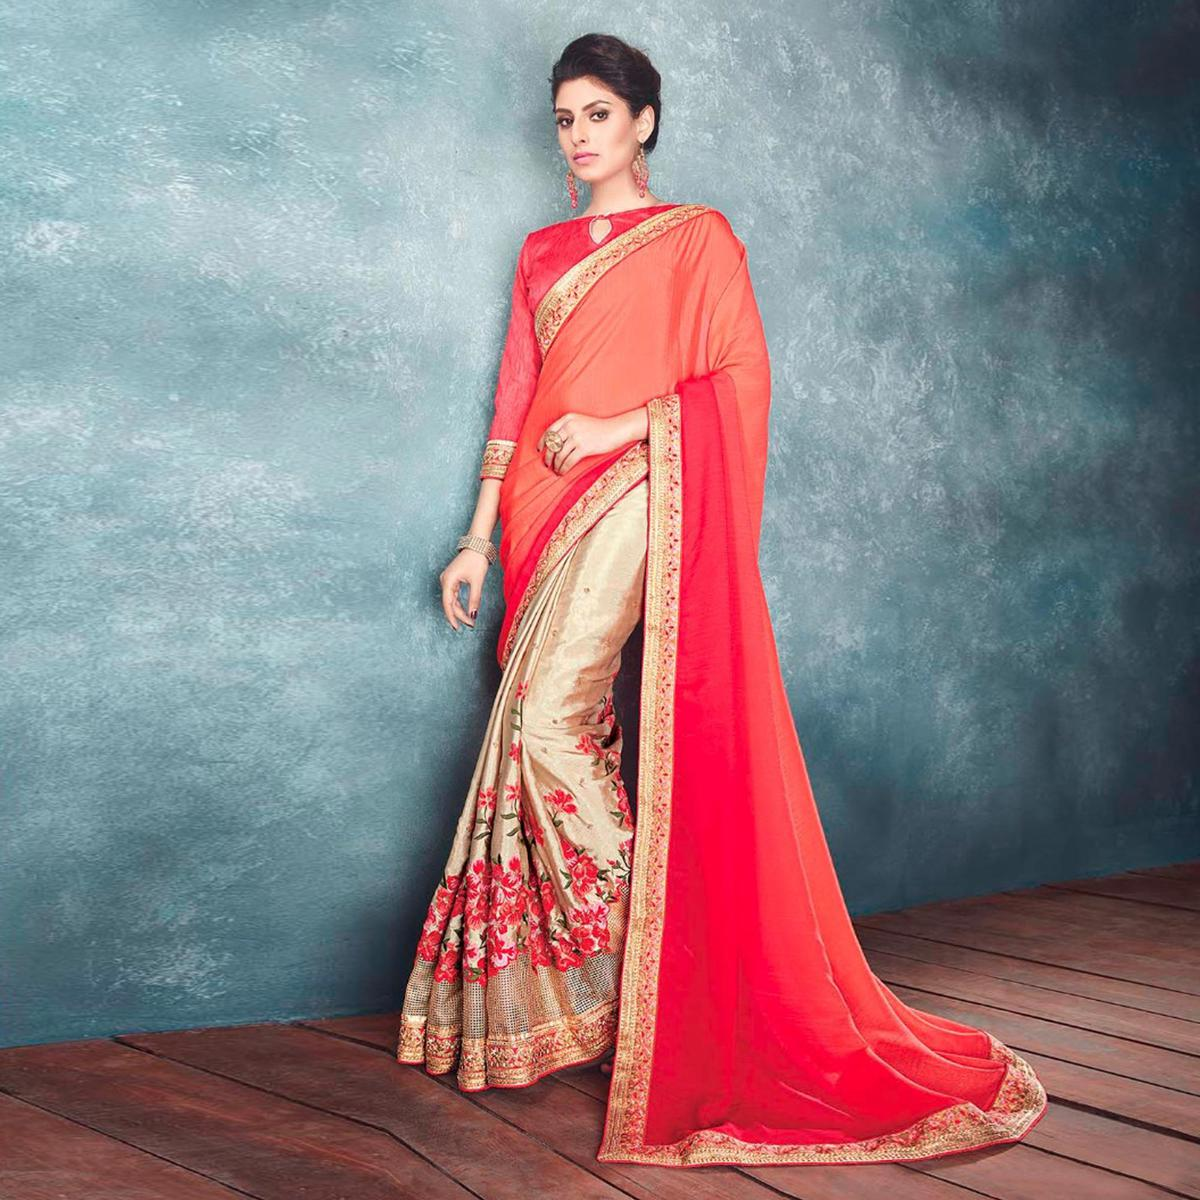 Sensational Red And Golden Chiffon Designer Partywear Saree